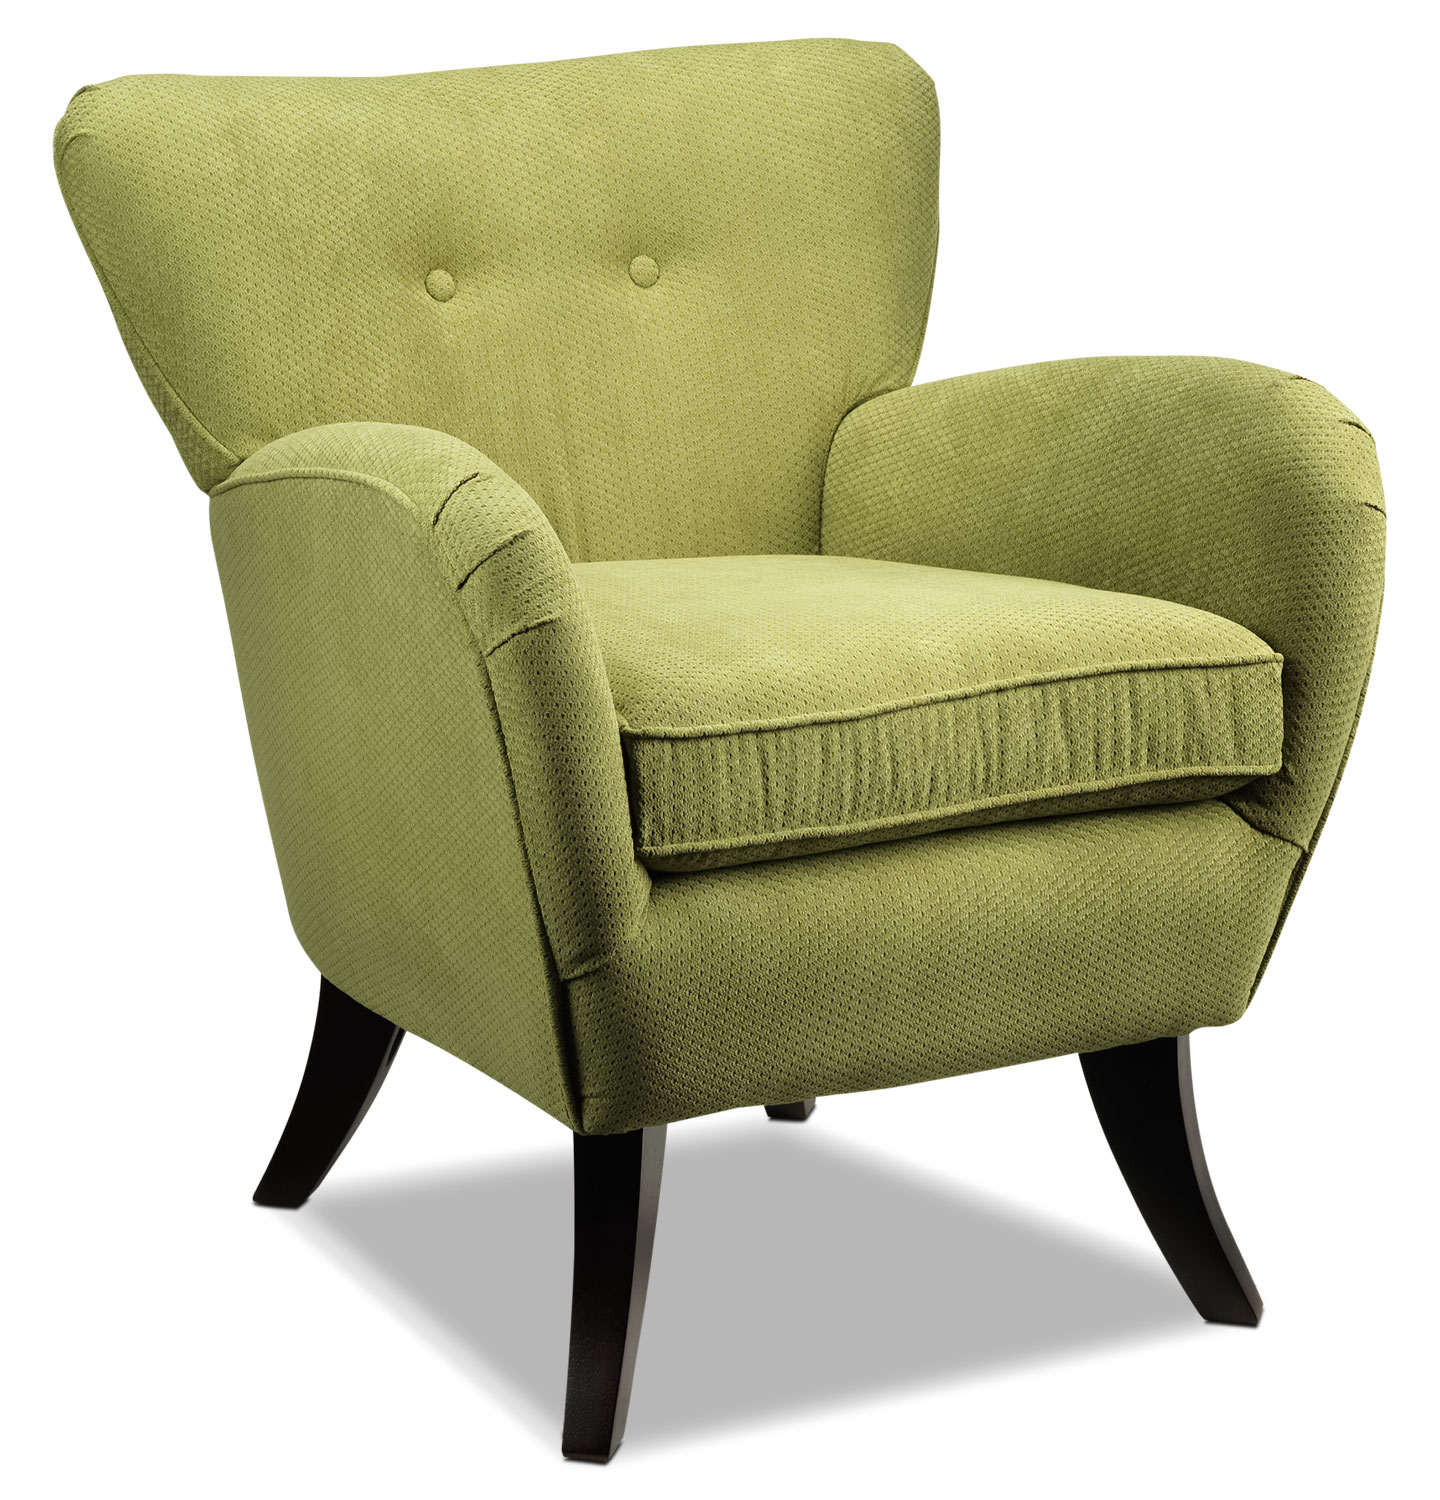 Elnora Accent Chair - Loden Green